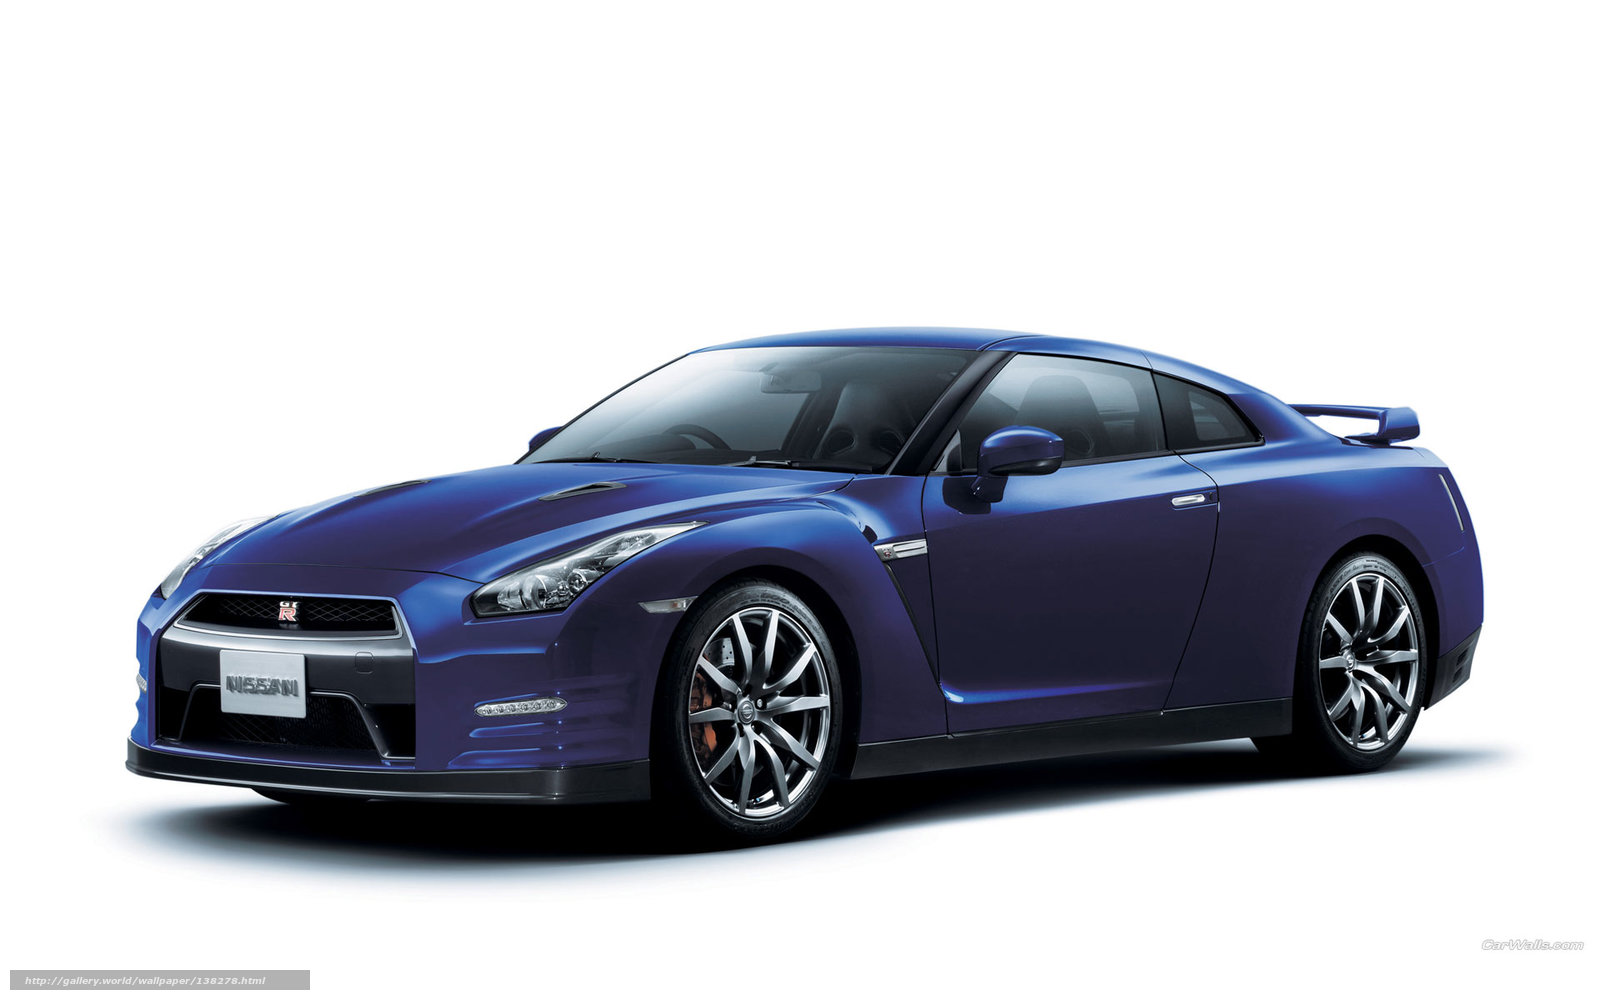 Tlcharger Fond D Ecran Nissan Gt R Voiture Machinerie